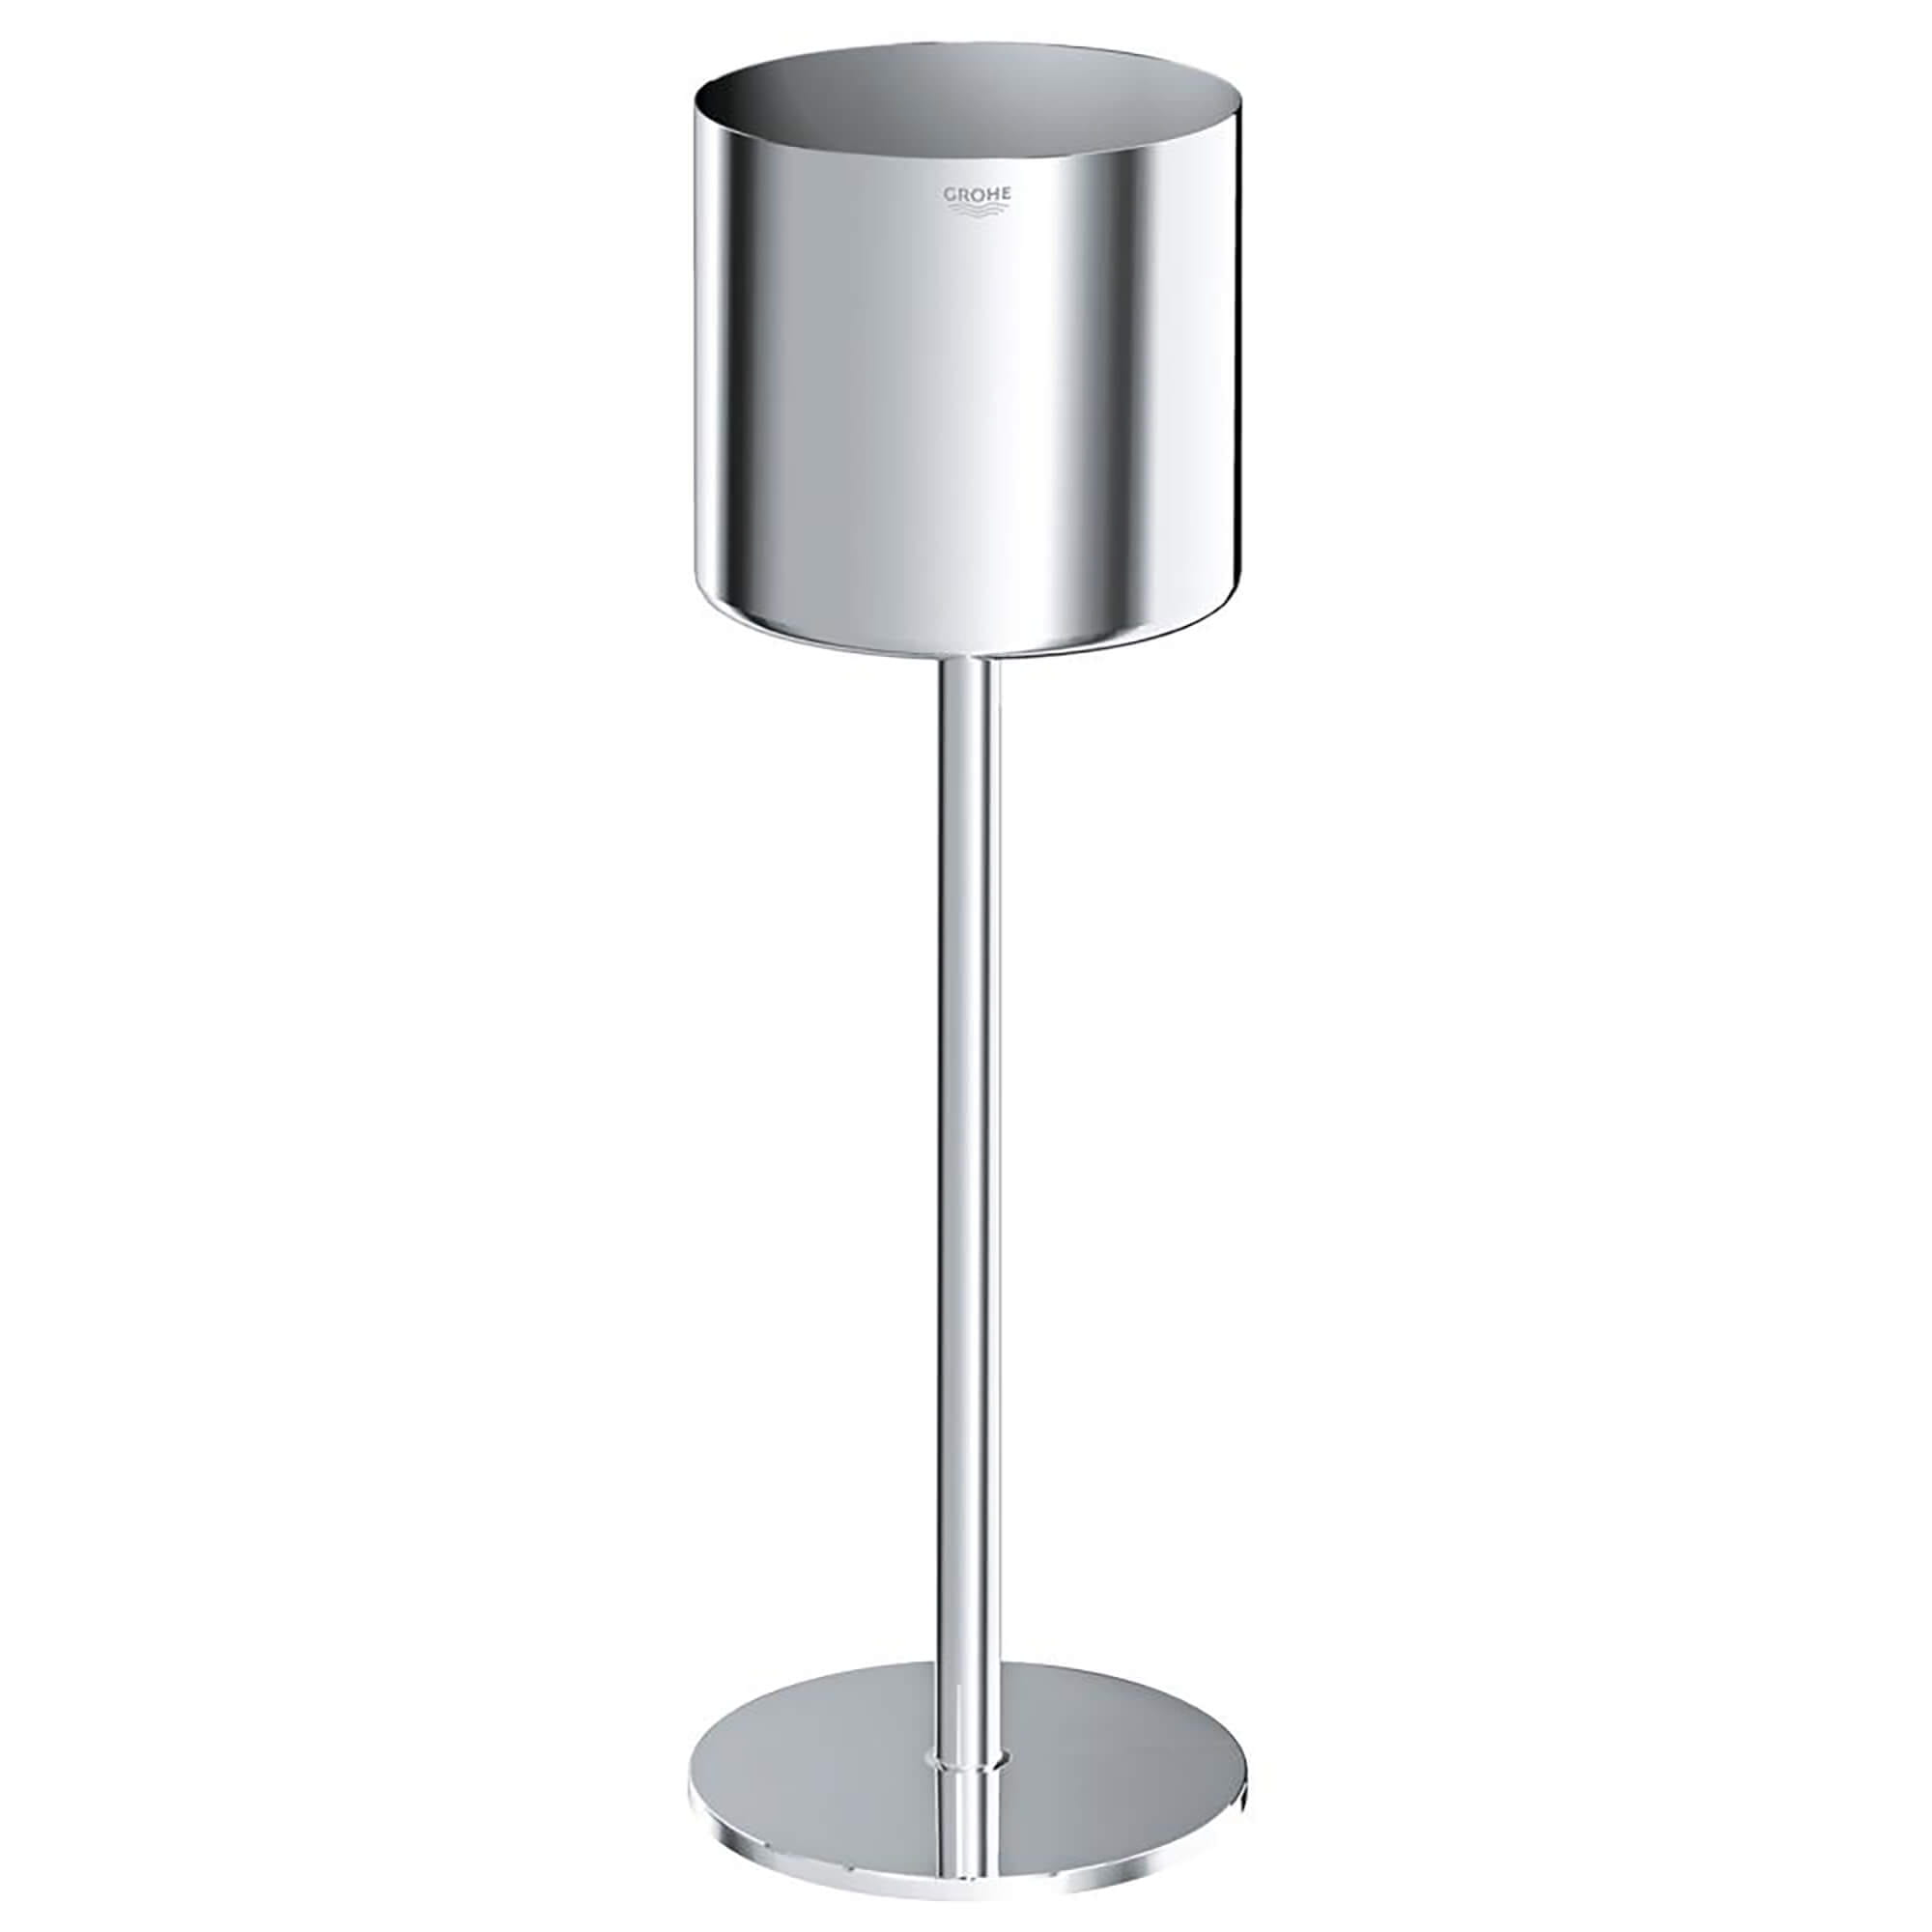 Champagne Bucket GROHE CHROME